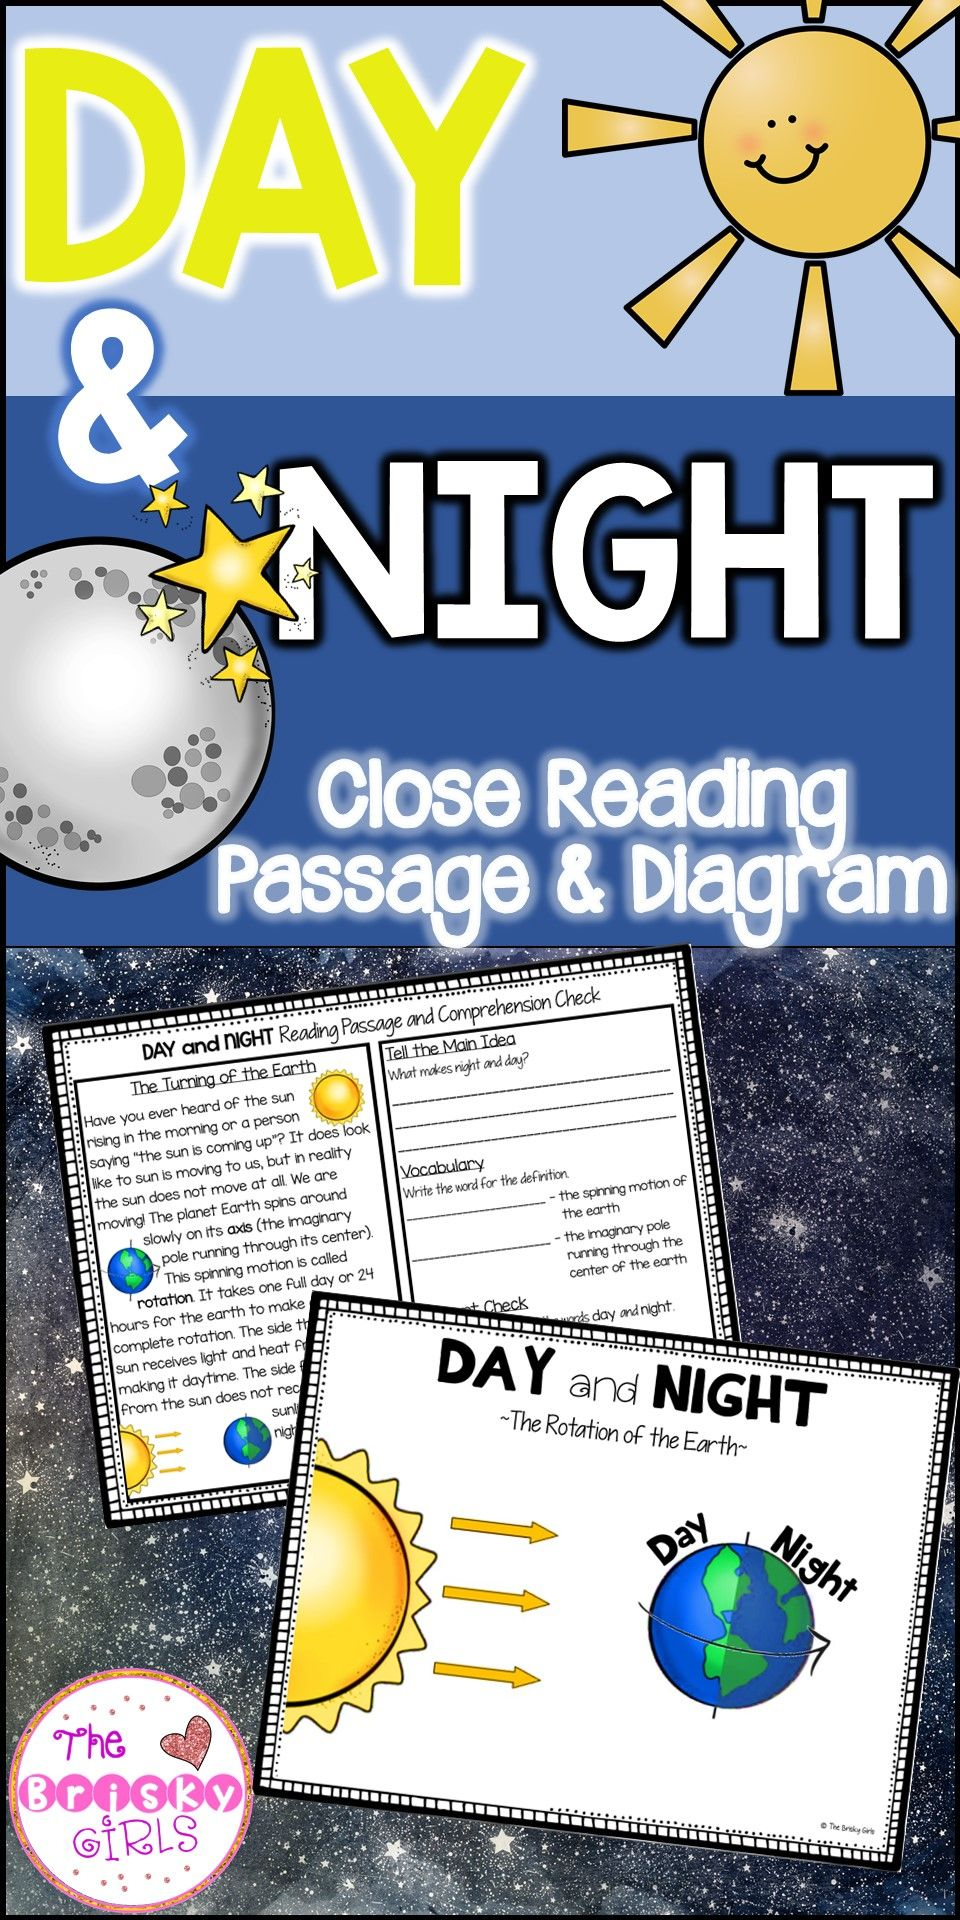 Day and night reading passage and diagram outer space activities day and night reading passage and diagram ccuart Gallery